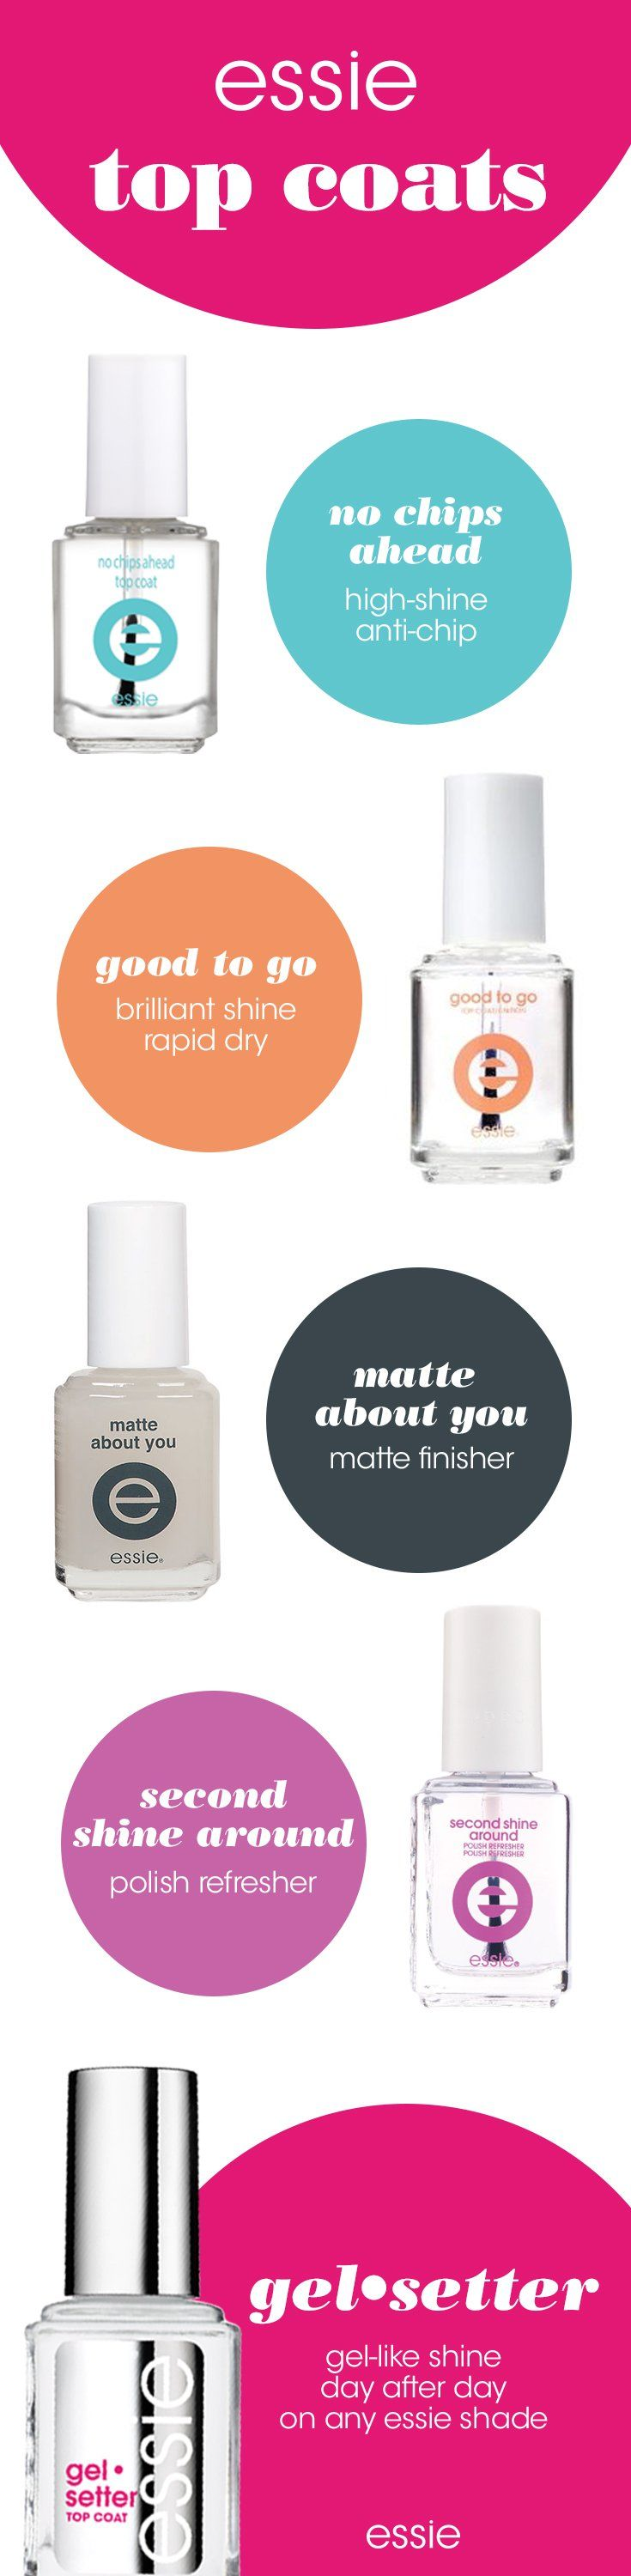 For a manicure that always wows, you need to give it some special nail care love with the essie top coat. Ranging from a polish refresher to high shine to anti-chip, to rapid dry and matte finish, your mani is only a top coat away from looking as polished as you do every day.